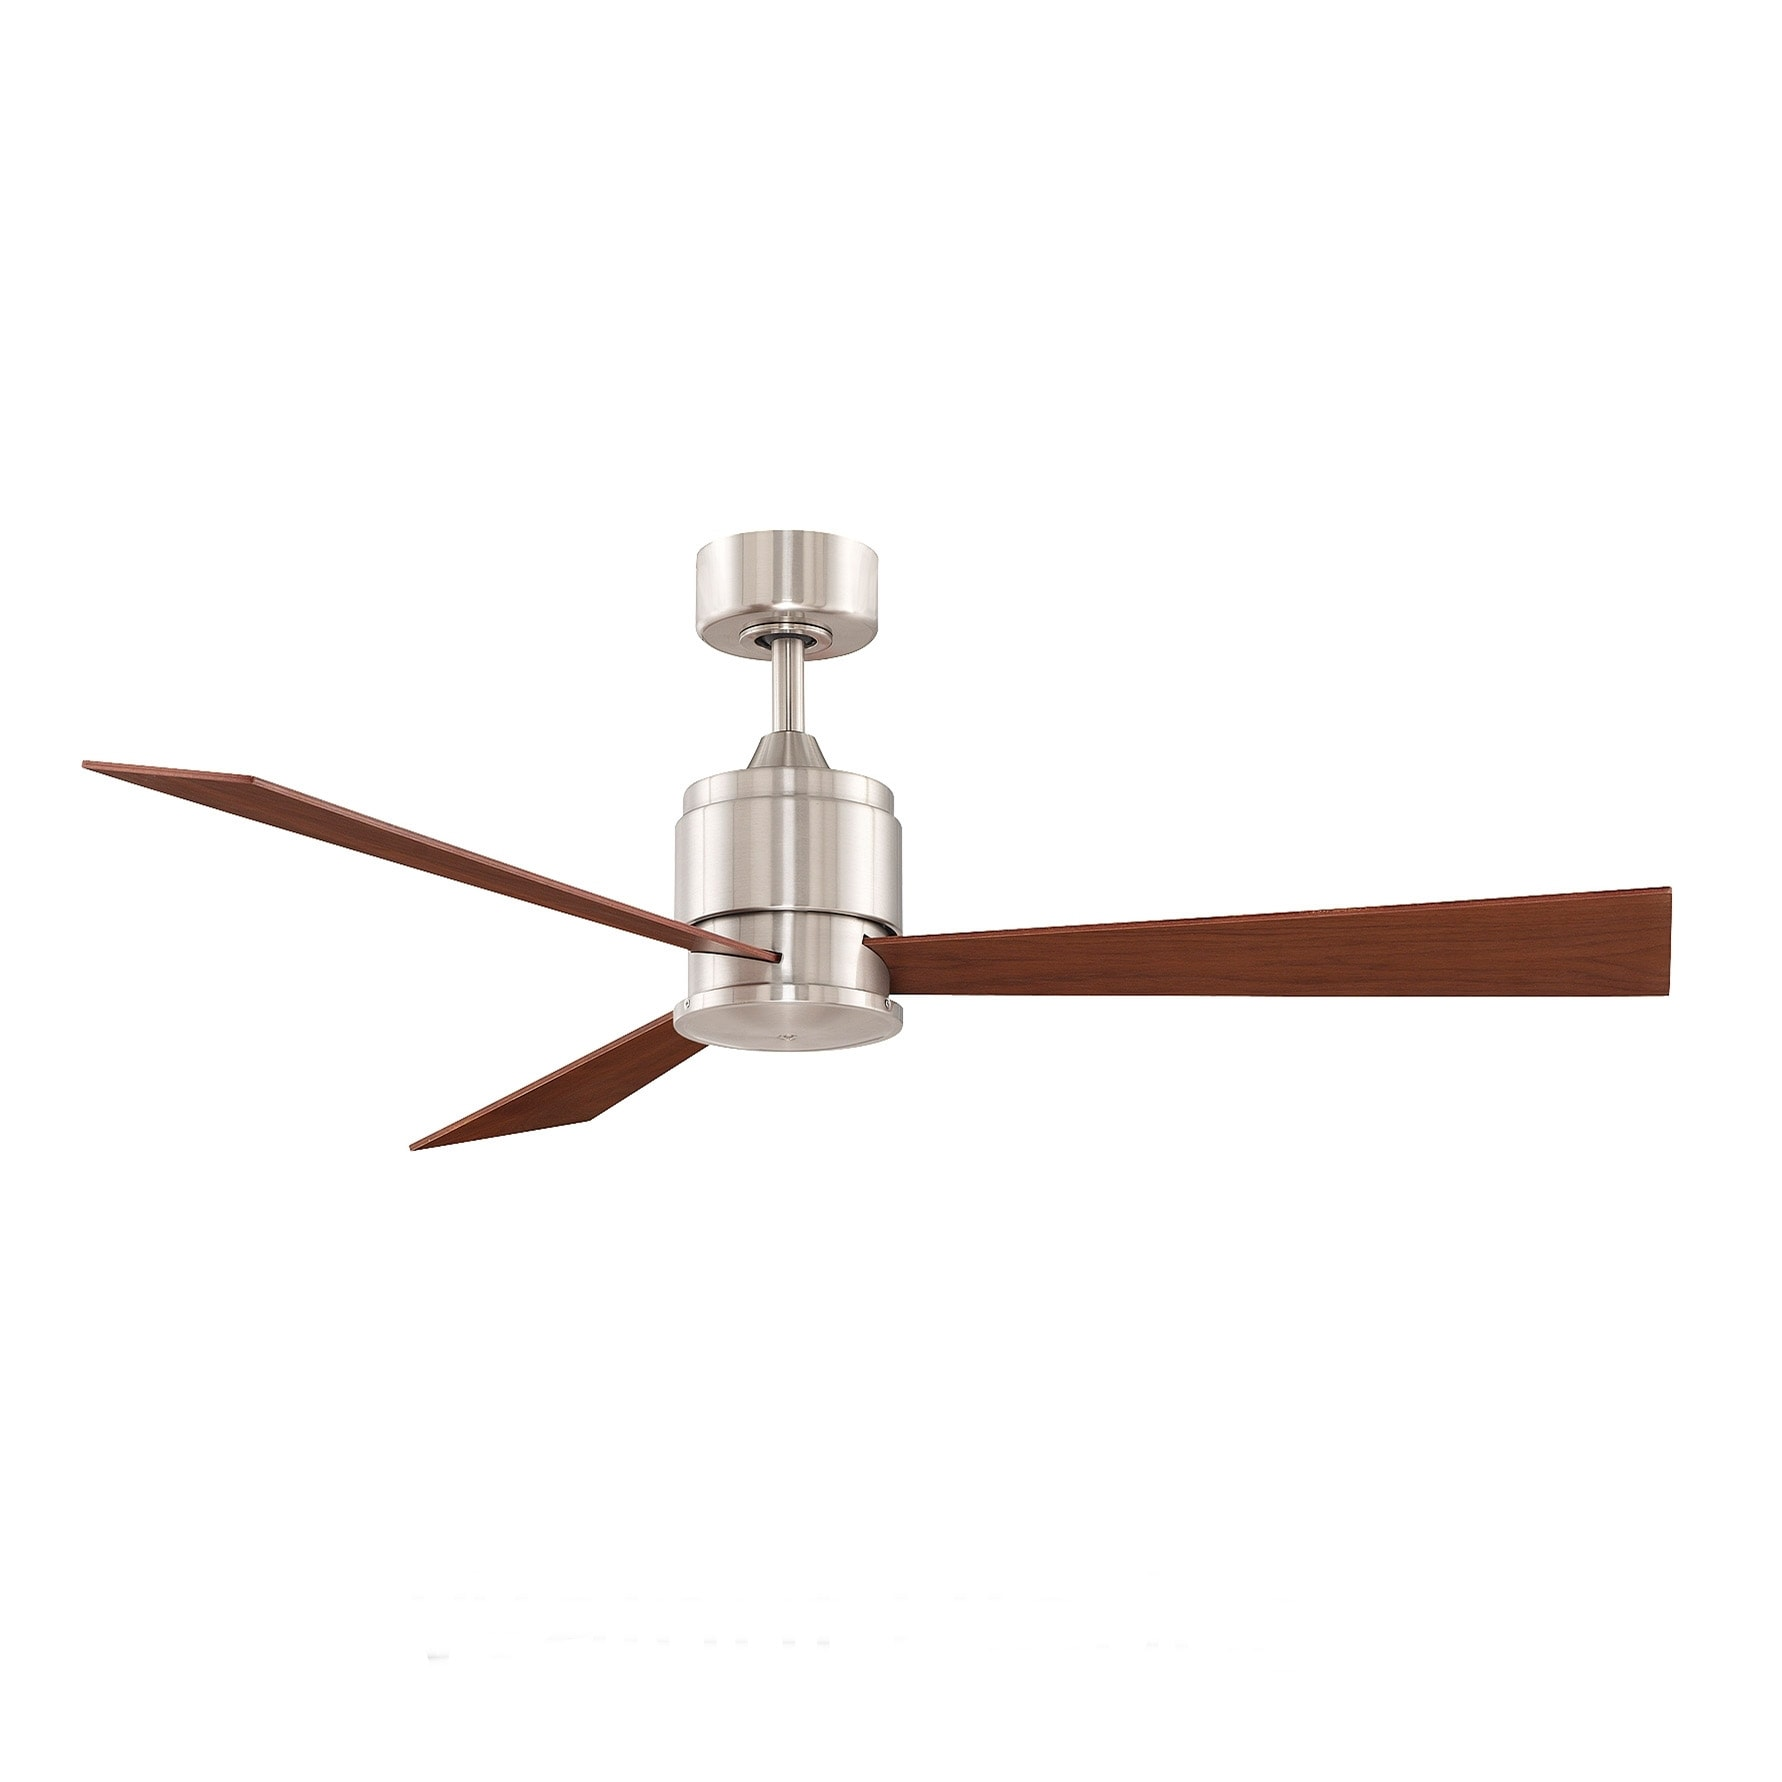 Buy Fanimation Ceiling Fans Online at Overstock | Our Best Lighting ...